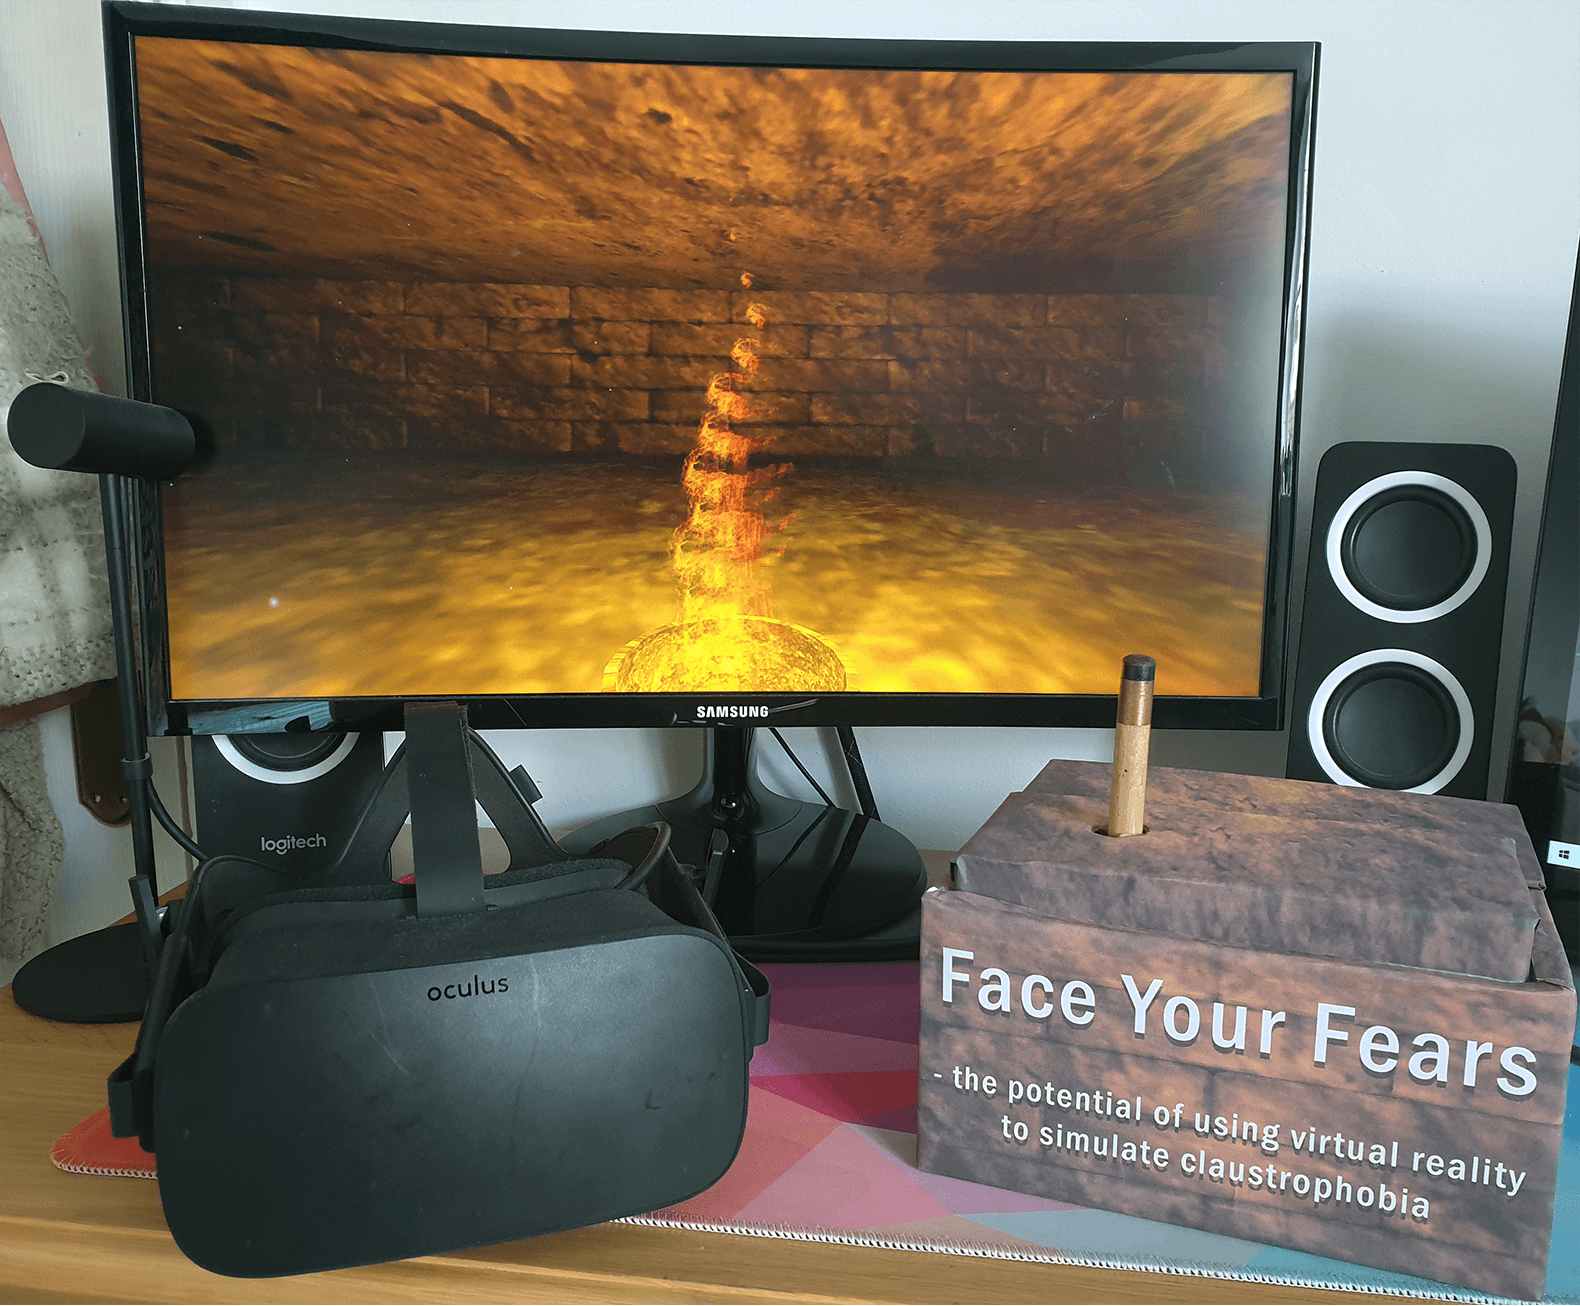 Face Your Fears – the equipment